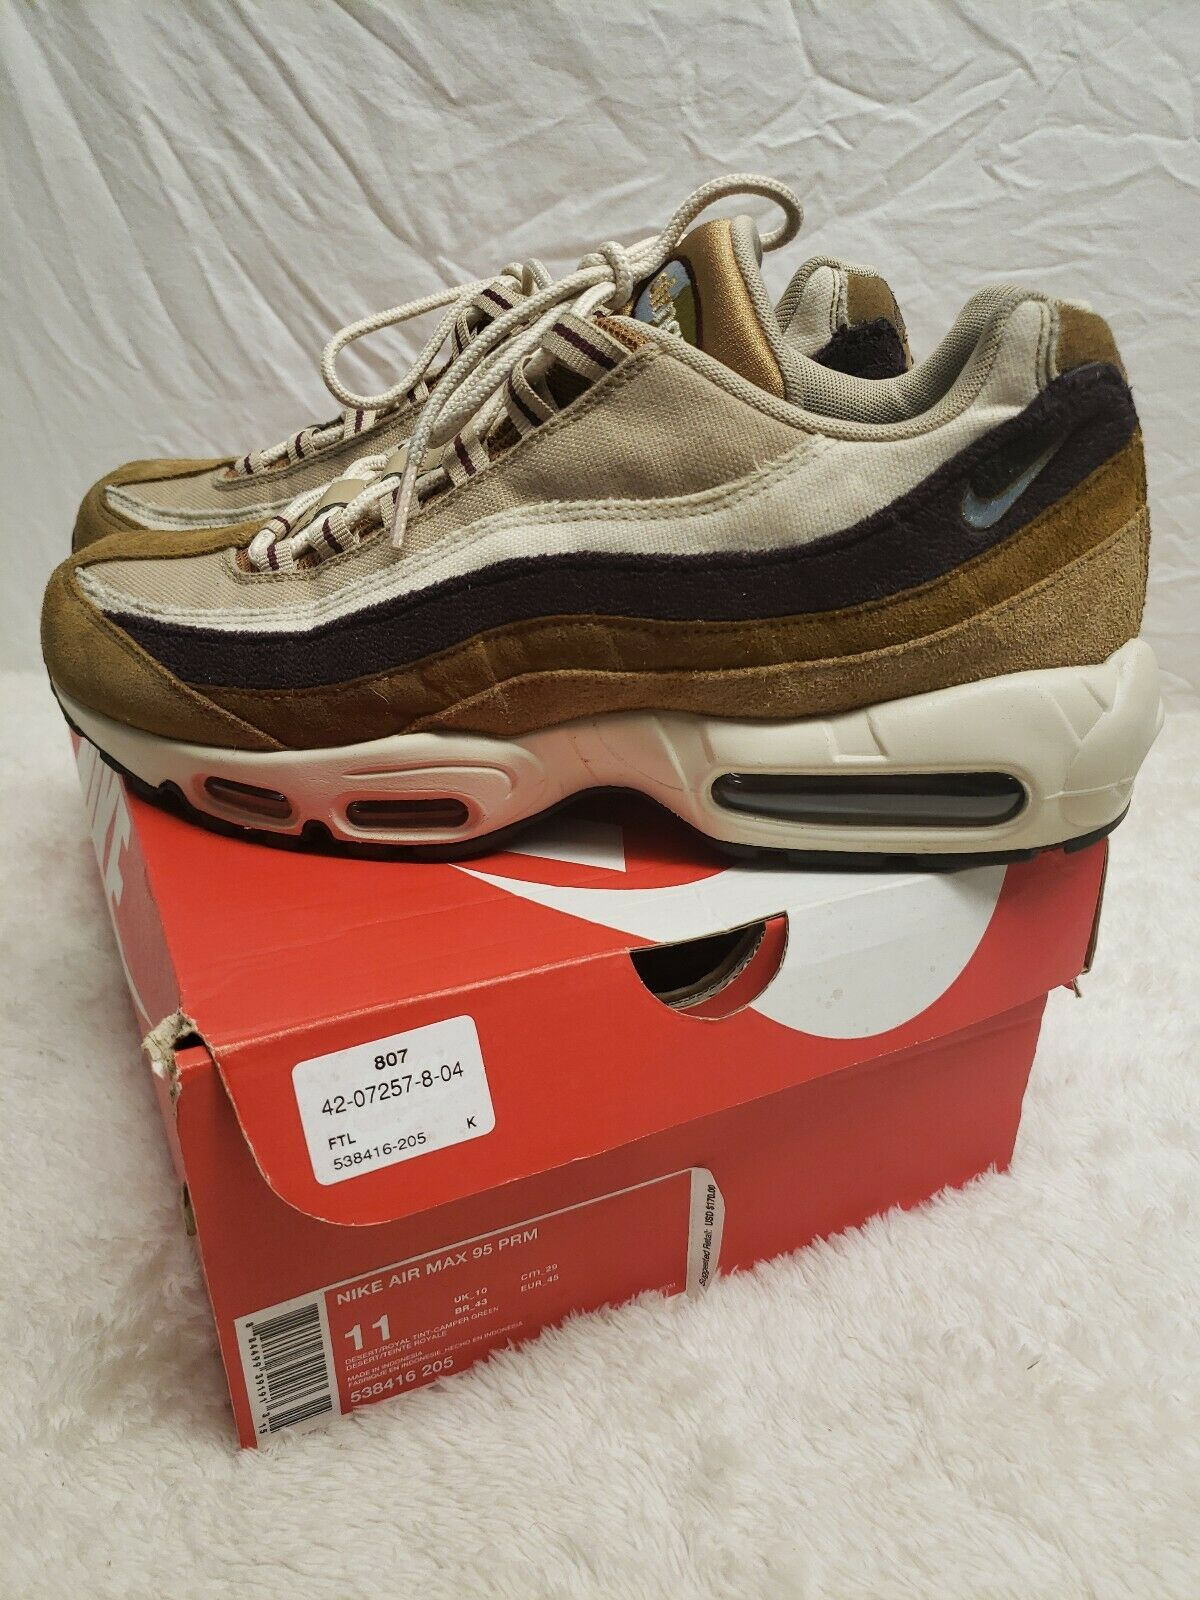 the latest dc772 12322 Nike air max 95 premium desert size 11 11 11 538416 205 PRM ...